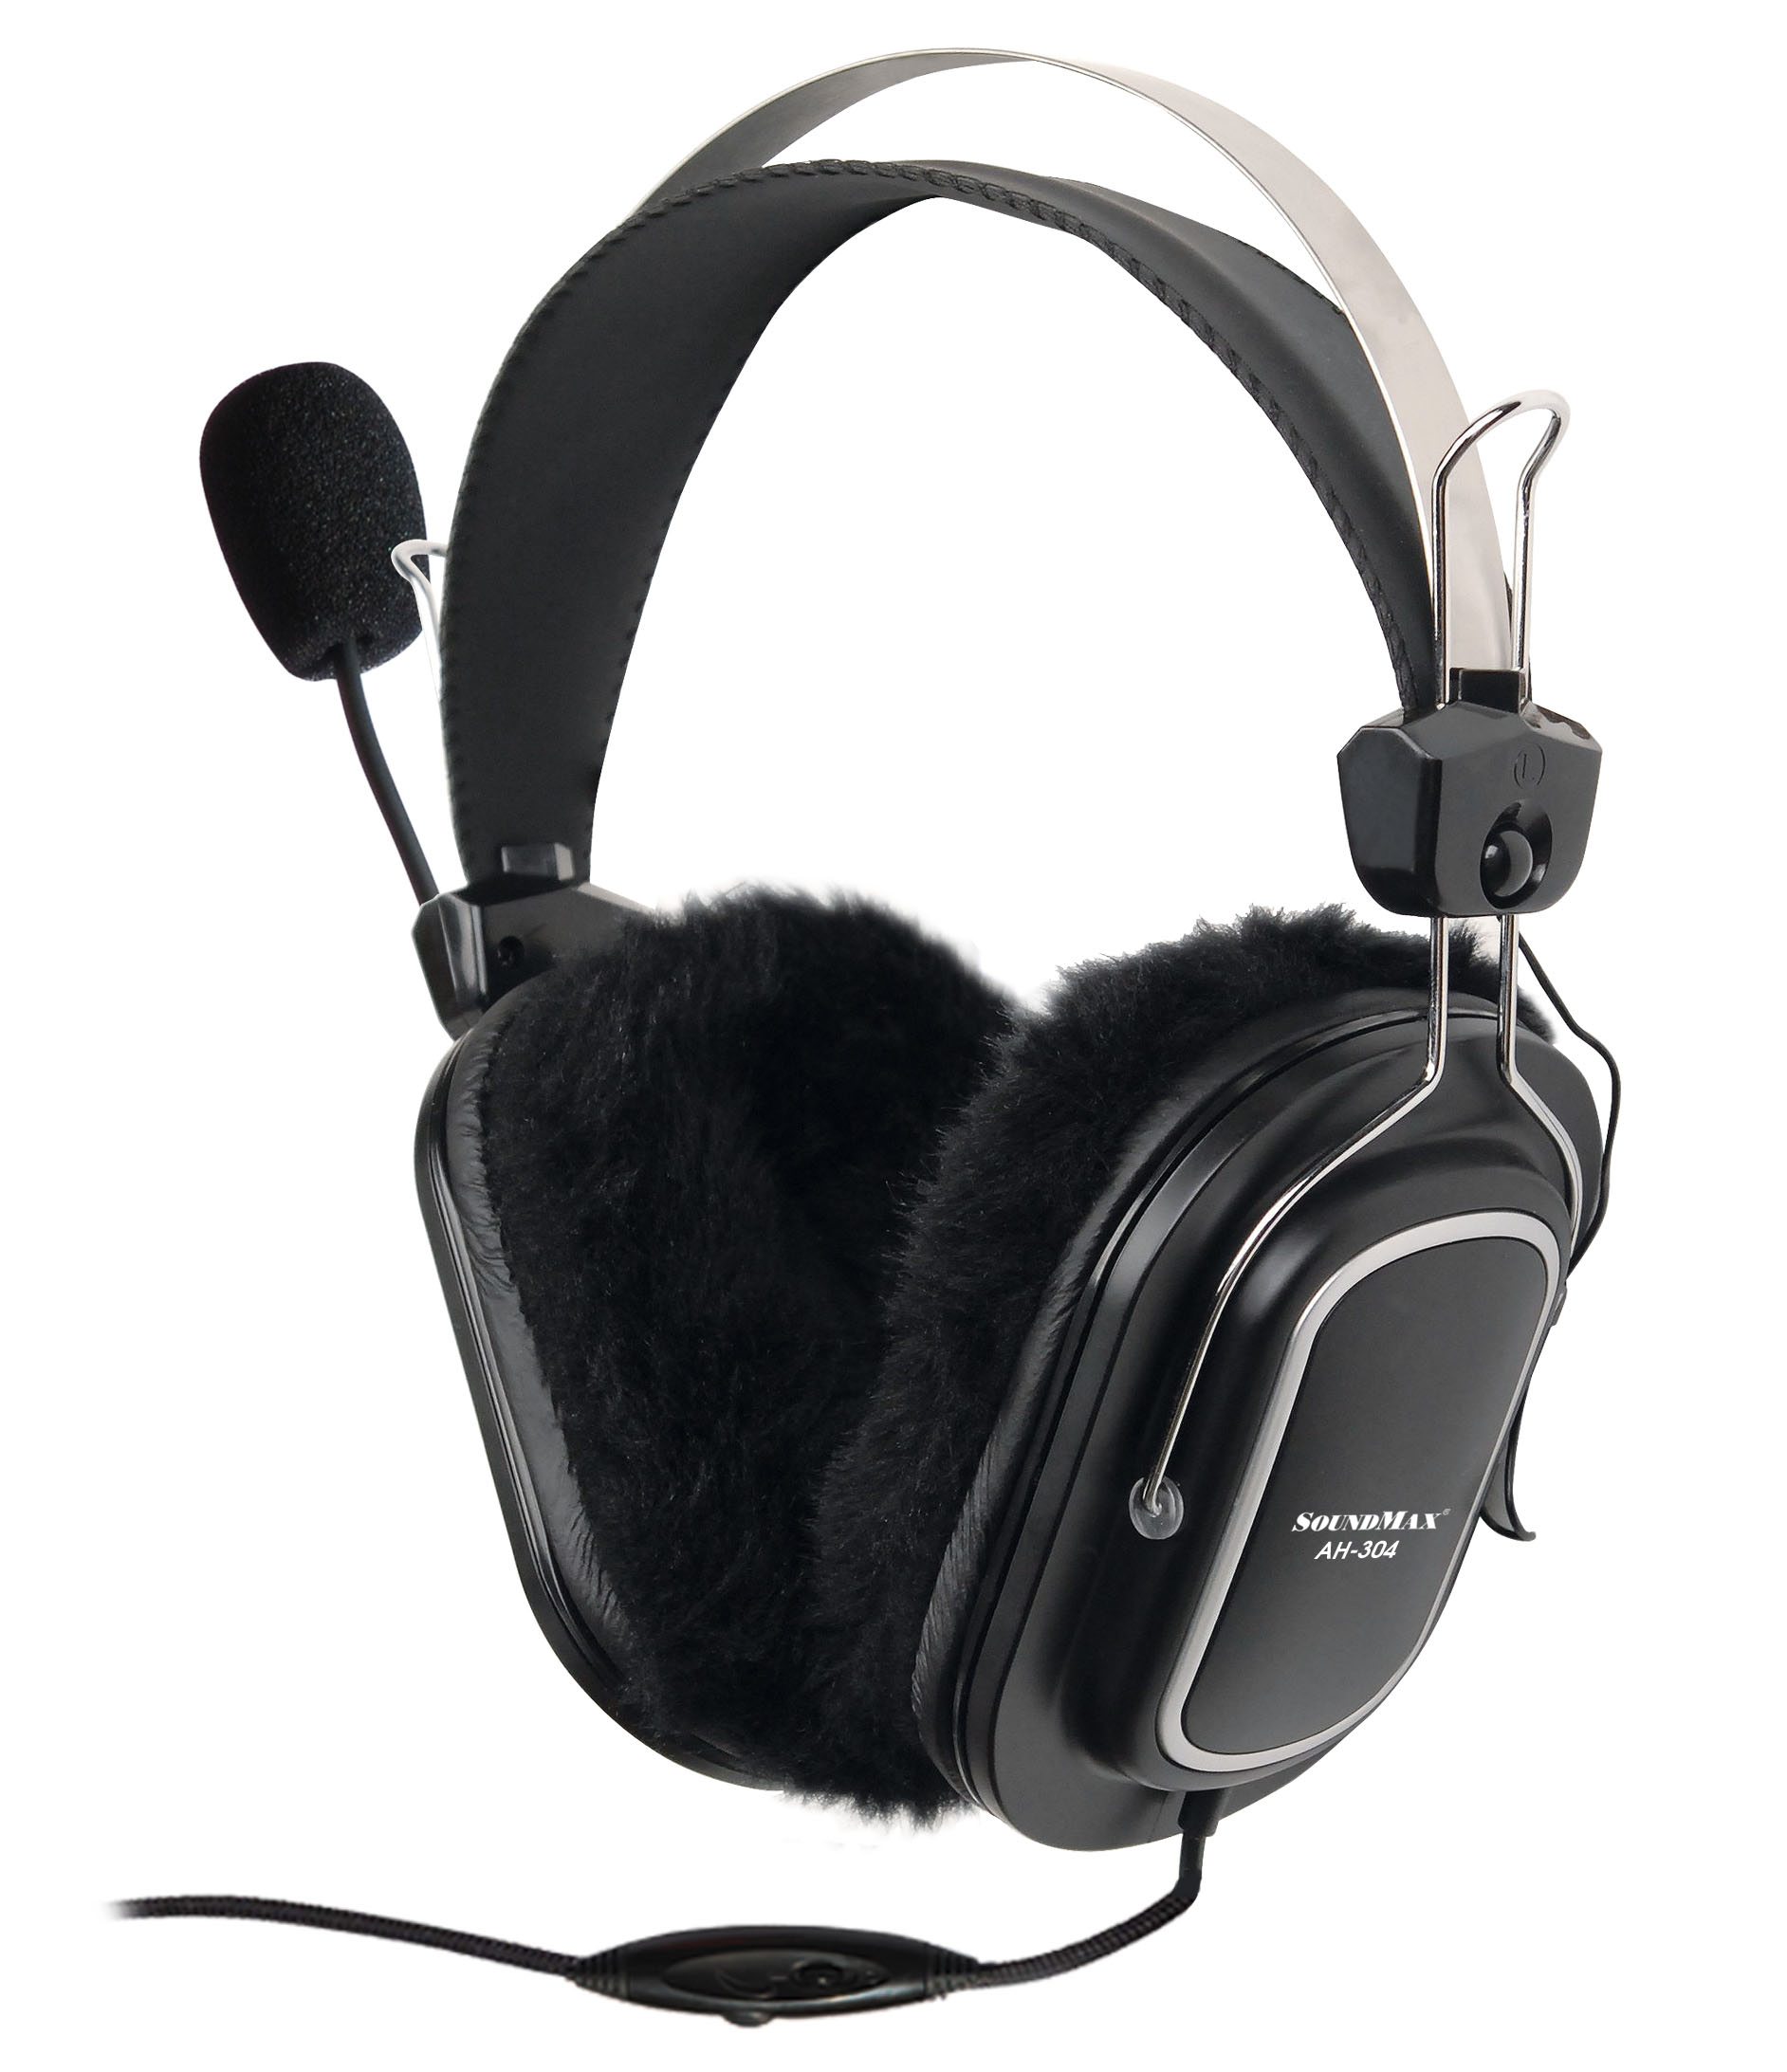 tai_nghe_headphone_soundmax_ah304_big